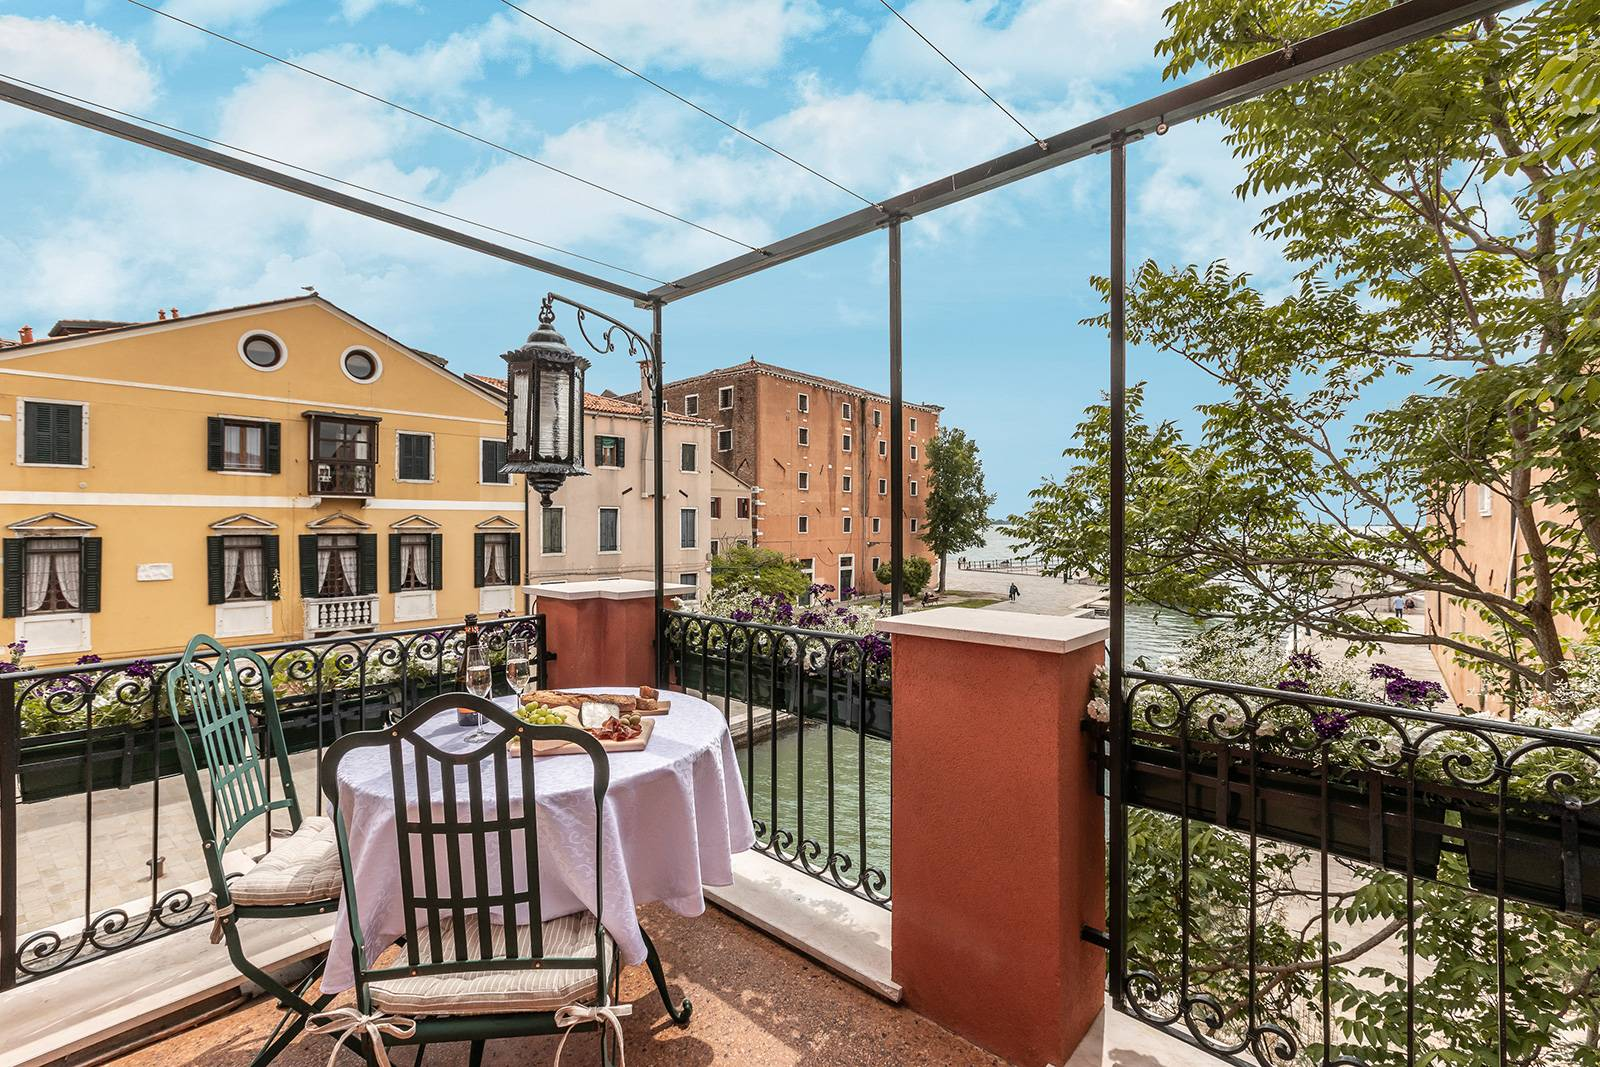 the Alcova apartment has a beautiful terrace with canal view